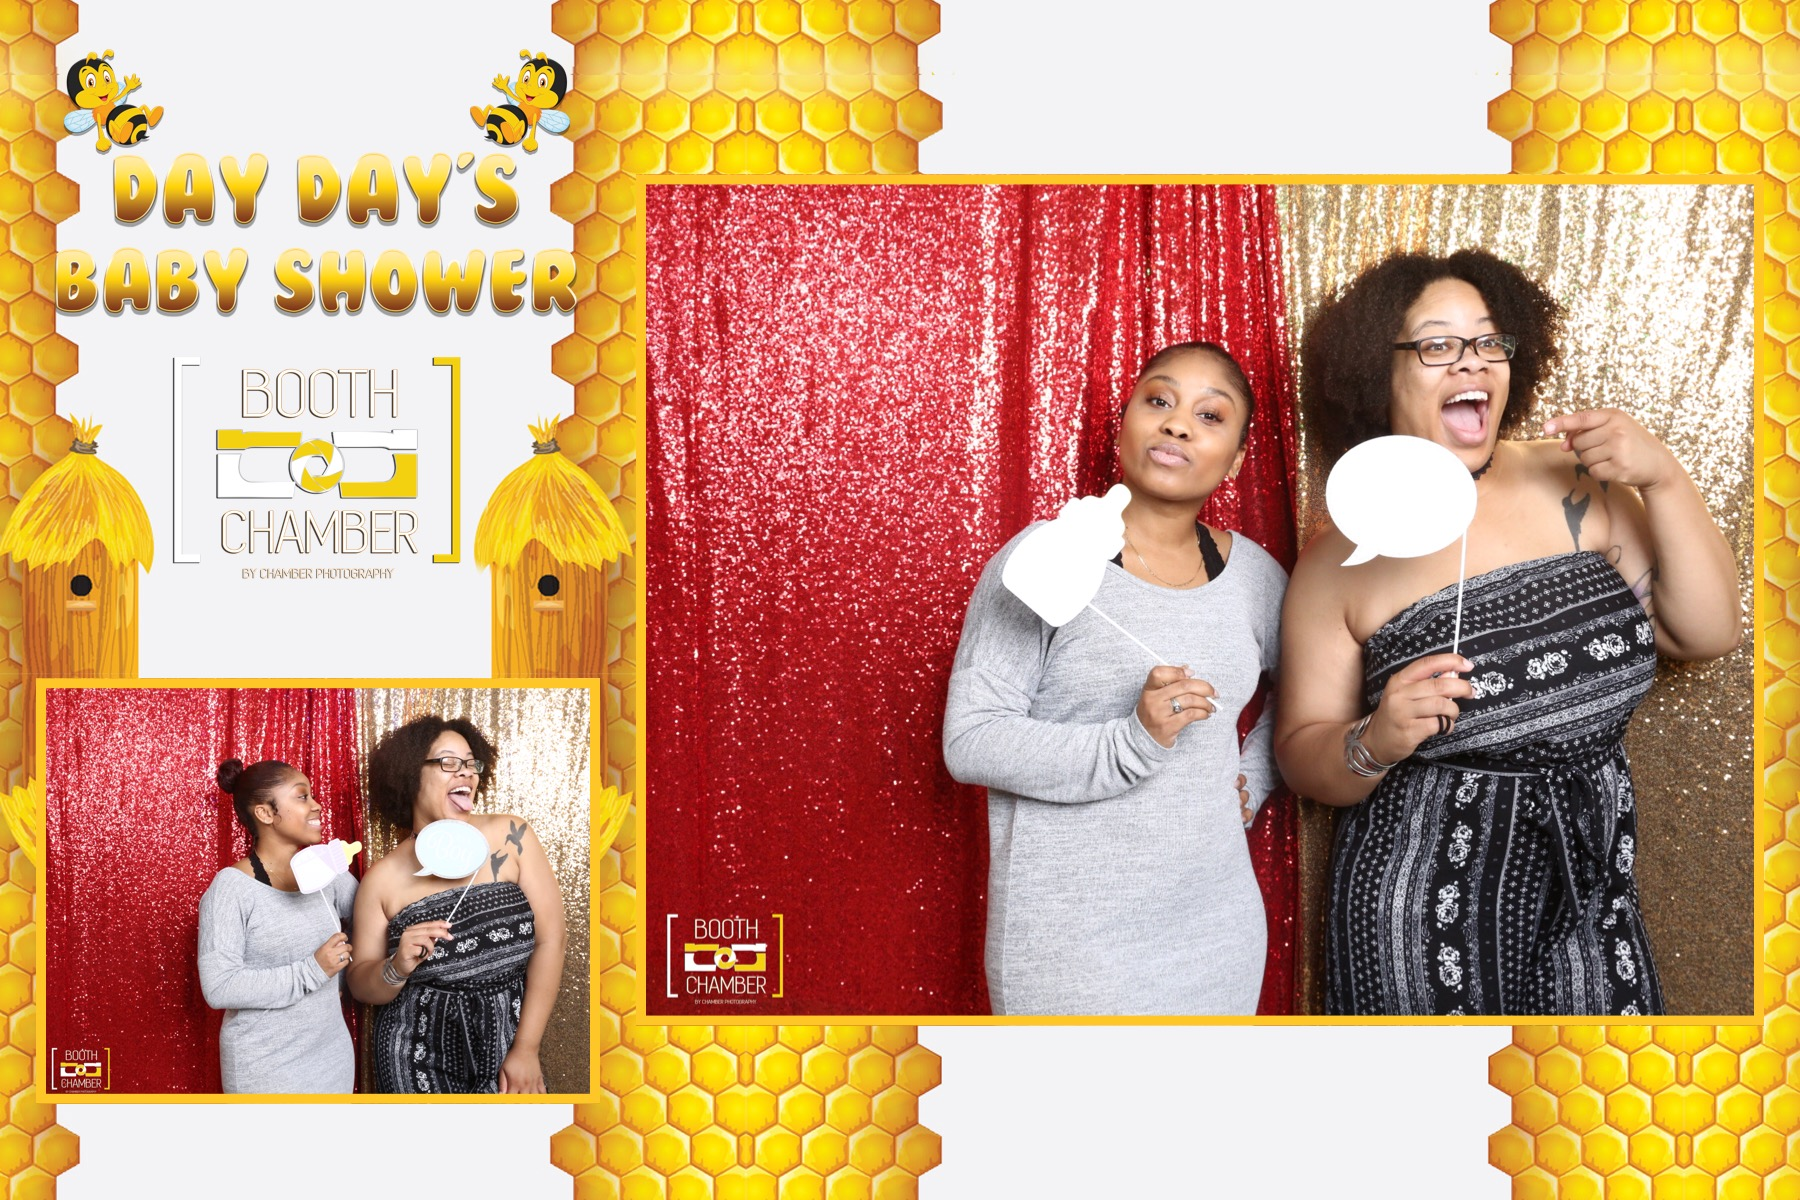 Booth Chamber Photo Booth Baby Shower Chamber Hart Photography_06.jpeg